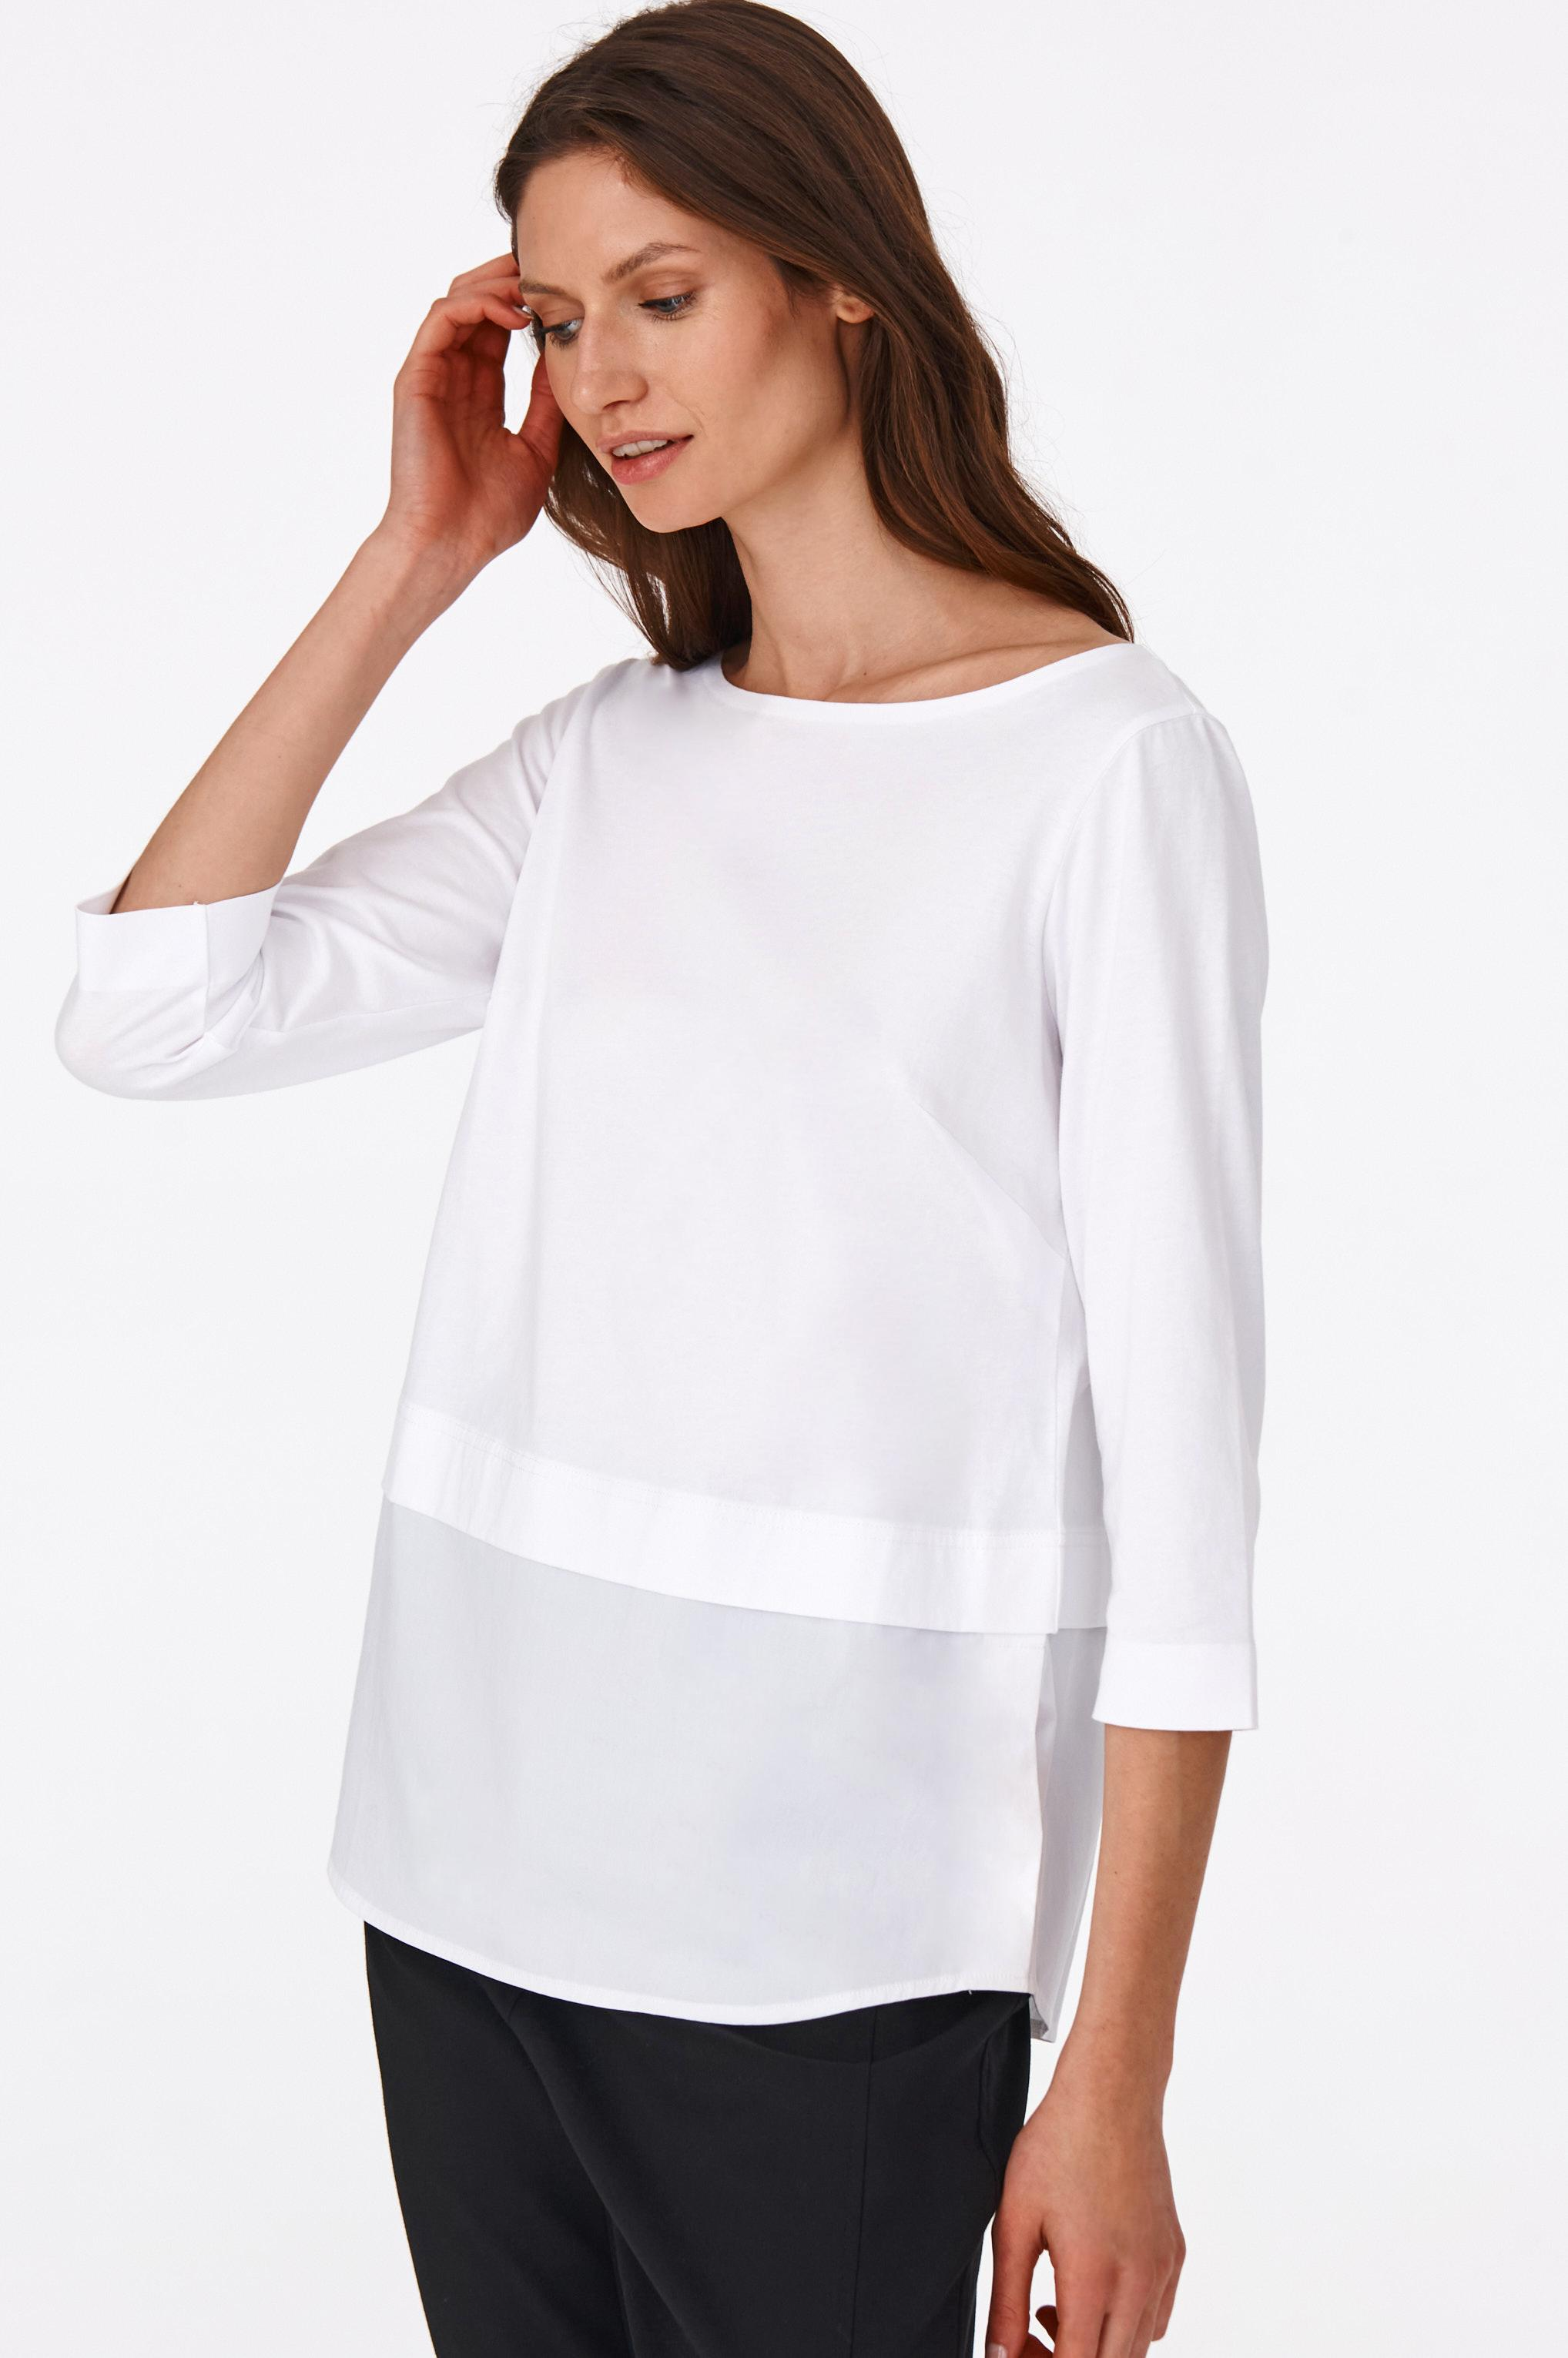 LADIES' KNITTED BLOUSE WAROMI